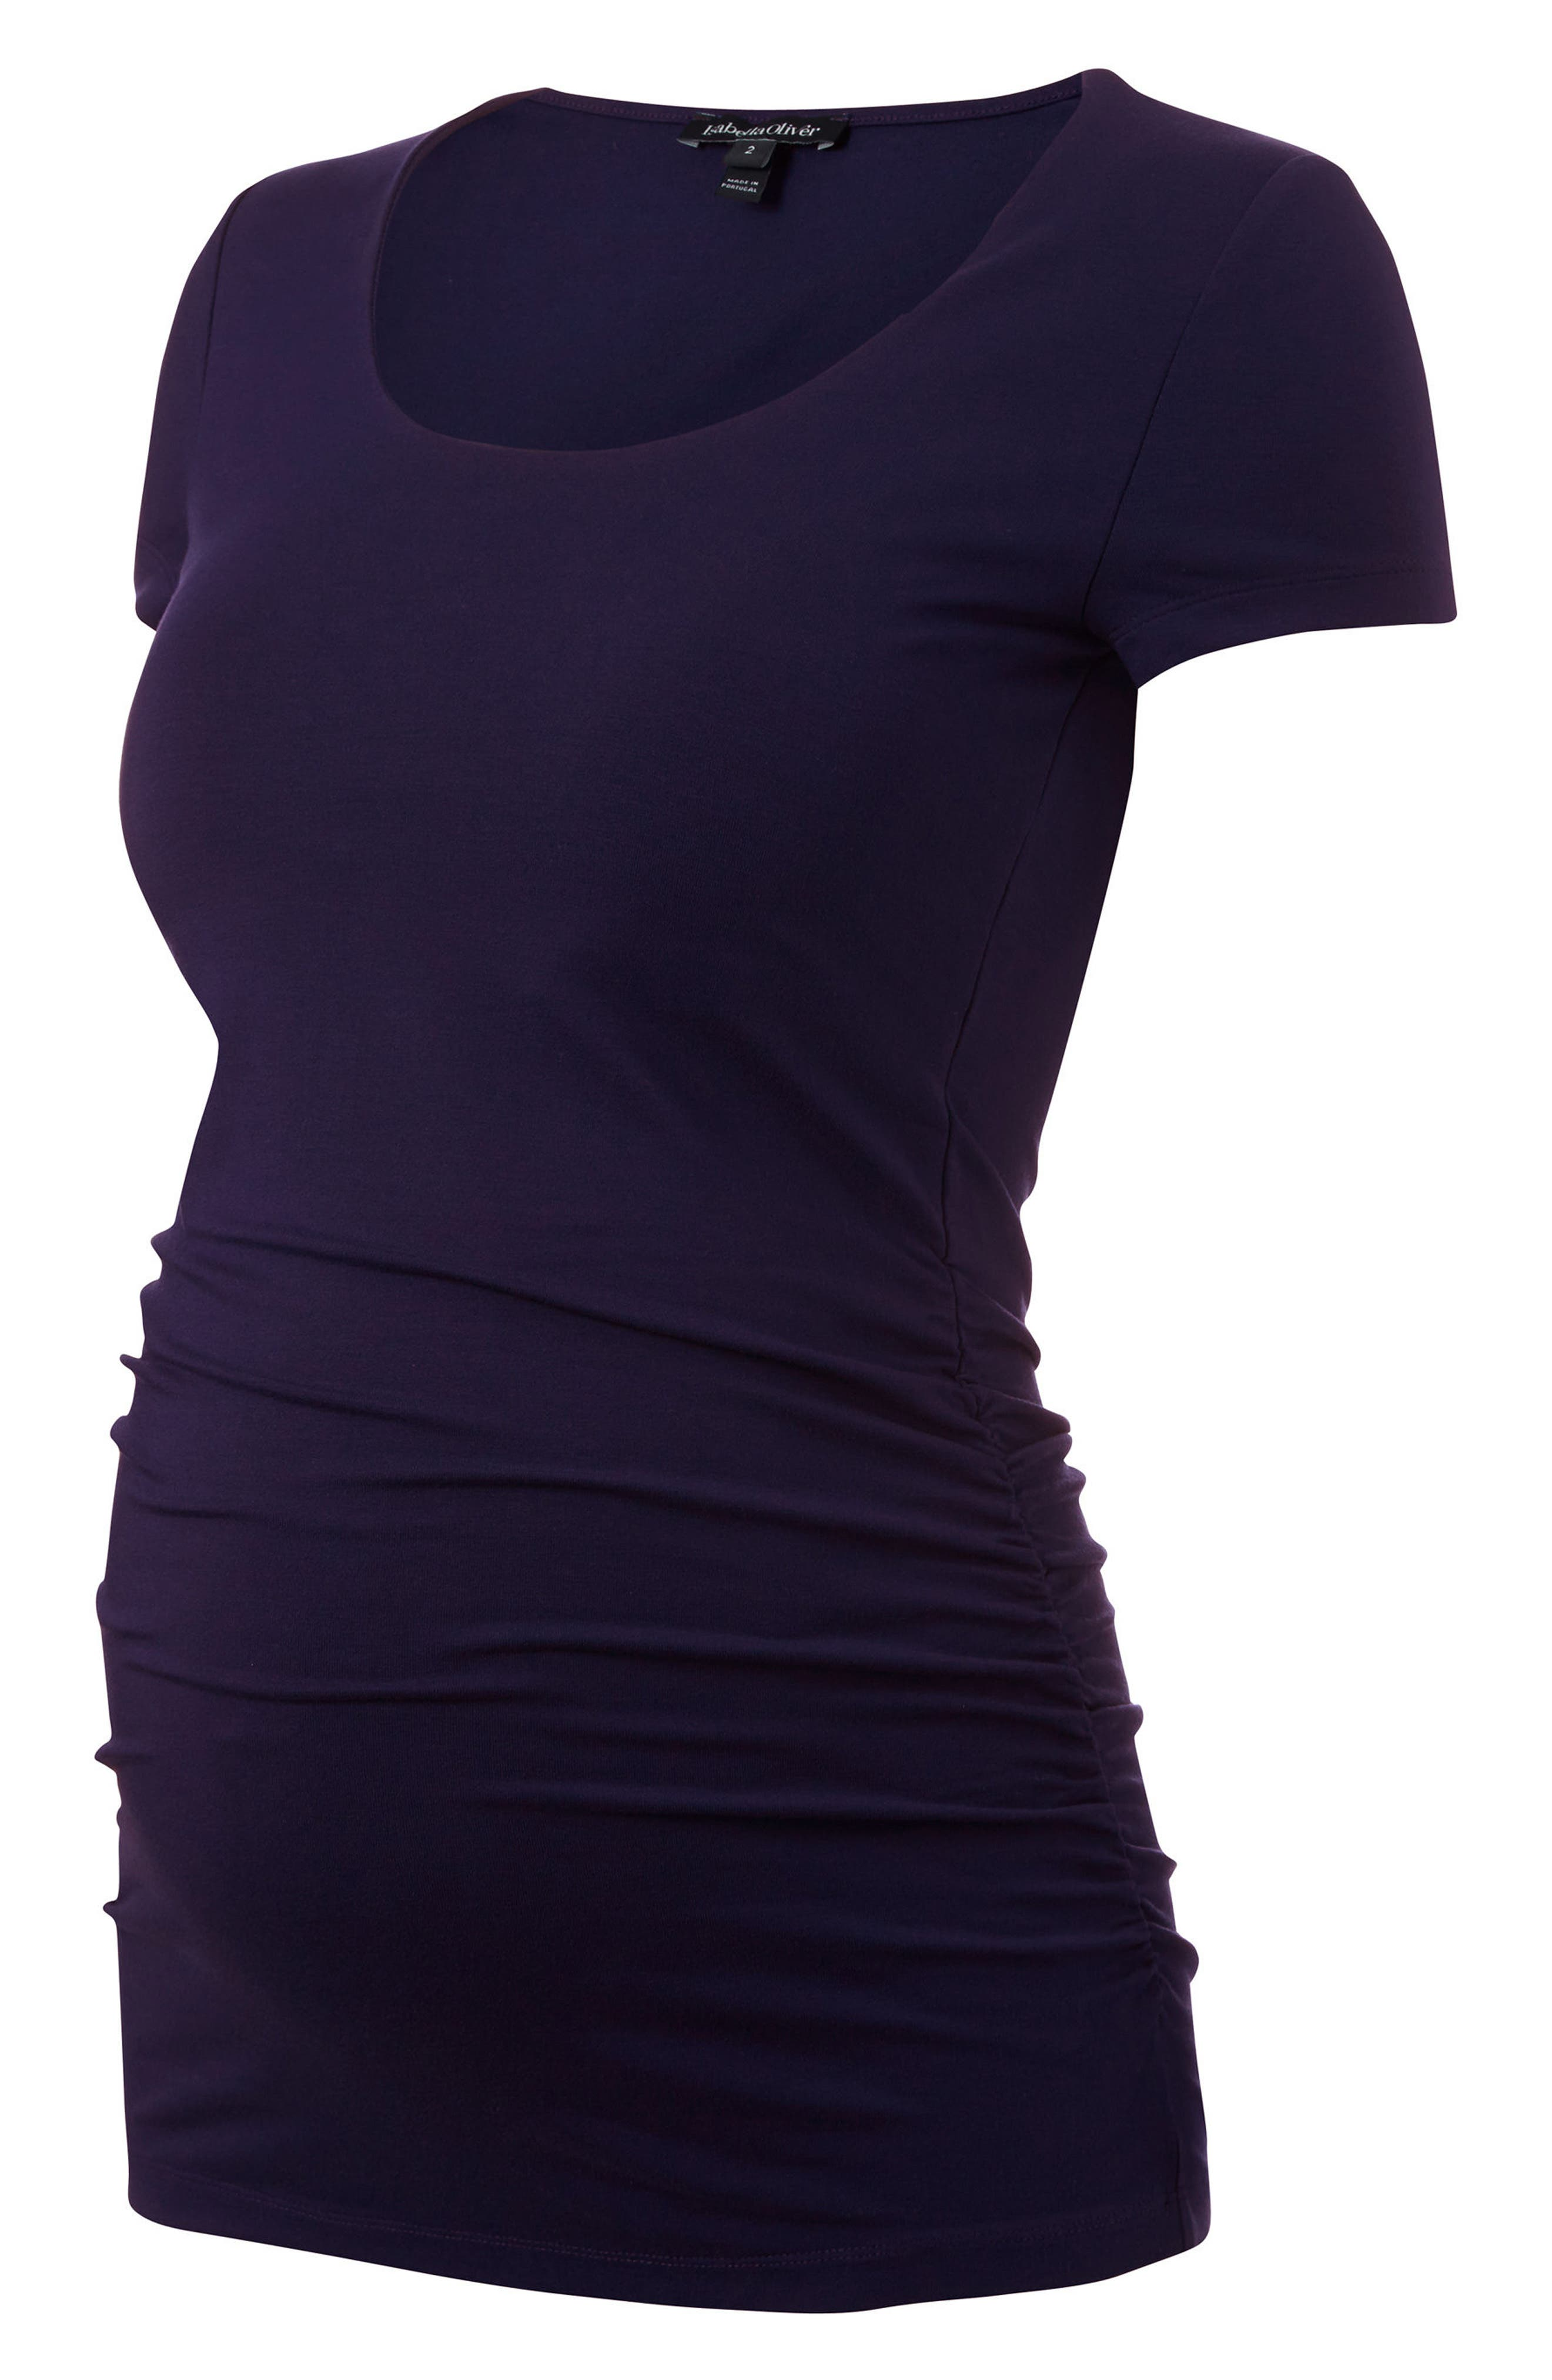 Alternate Image 1 Selected - Isabella Oliver Scoop Neck Maternity Tee